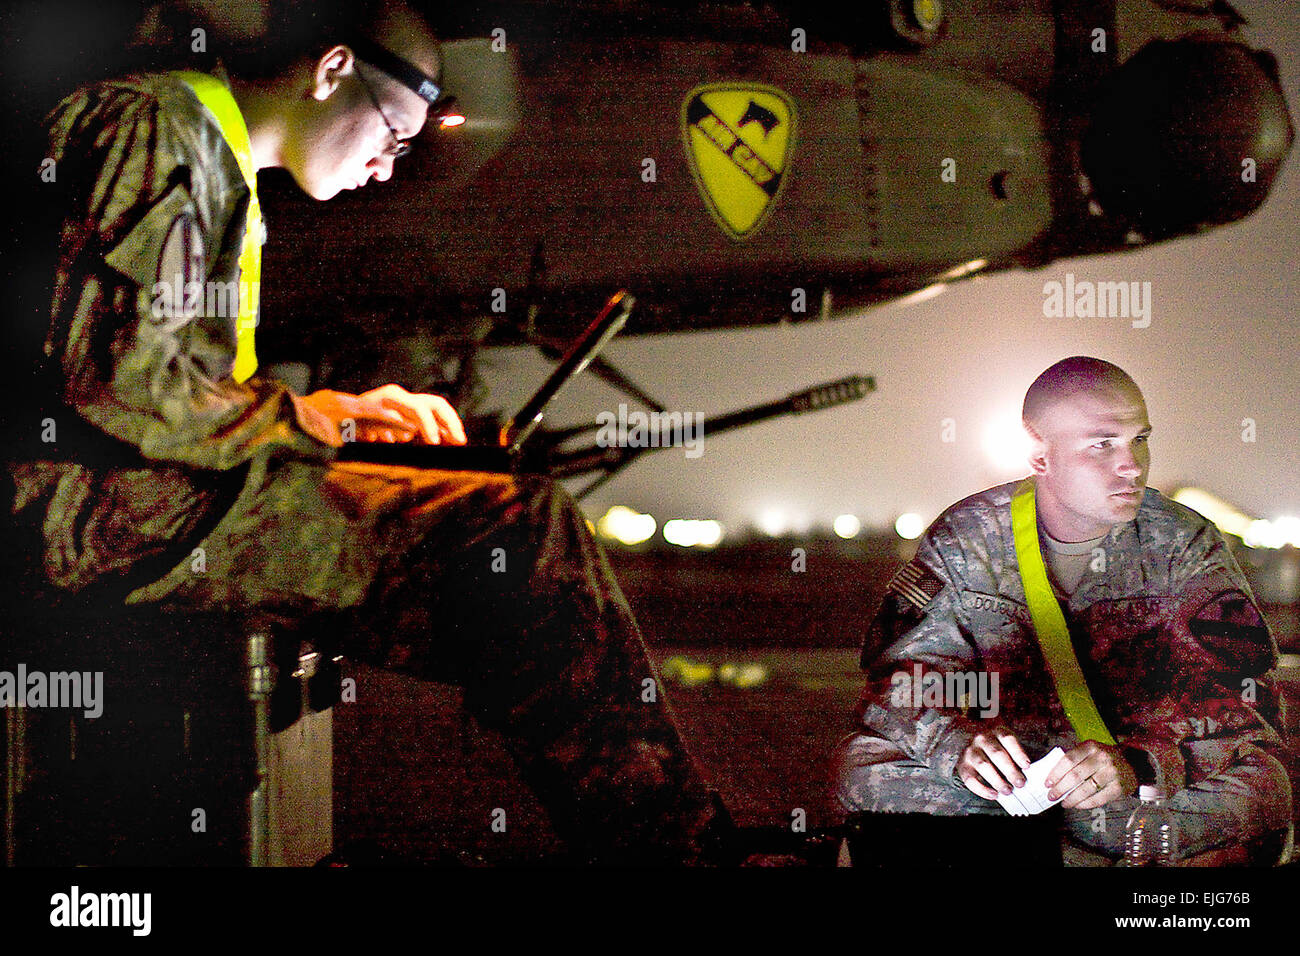 Working under a night sky, U.S. Army Sgt. Derrick Douglas, right, and Spc. Nicholas Kirckof, left, review aircraft logs to plan the night's work load on Camp Beurhing, Kuwait, May 5, 2009. Douglas and Kirckof, both AH-64D Apache attack helicopter crew chiefs, are assigned to the 1st Cavalry Division's Company B, 4th Attack Reconnaissance Battalion, 227th Aviation Regiment, 1st Air Cavalry Brigade.  Sgt. Travis Zielinski Stock Photo